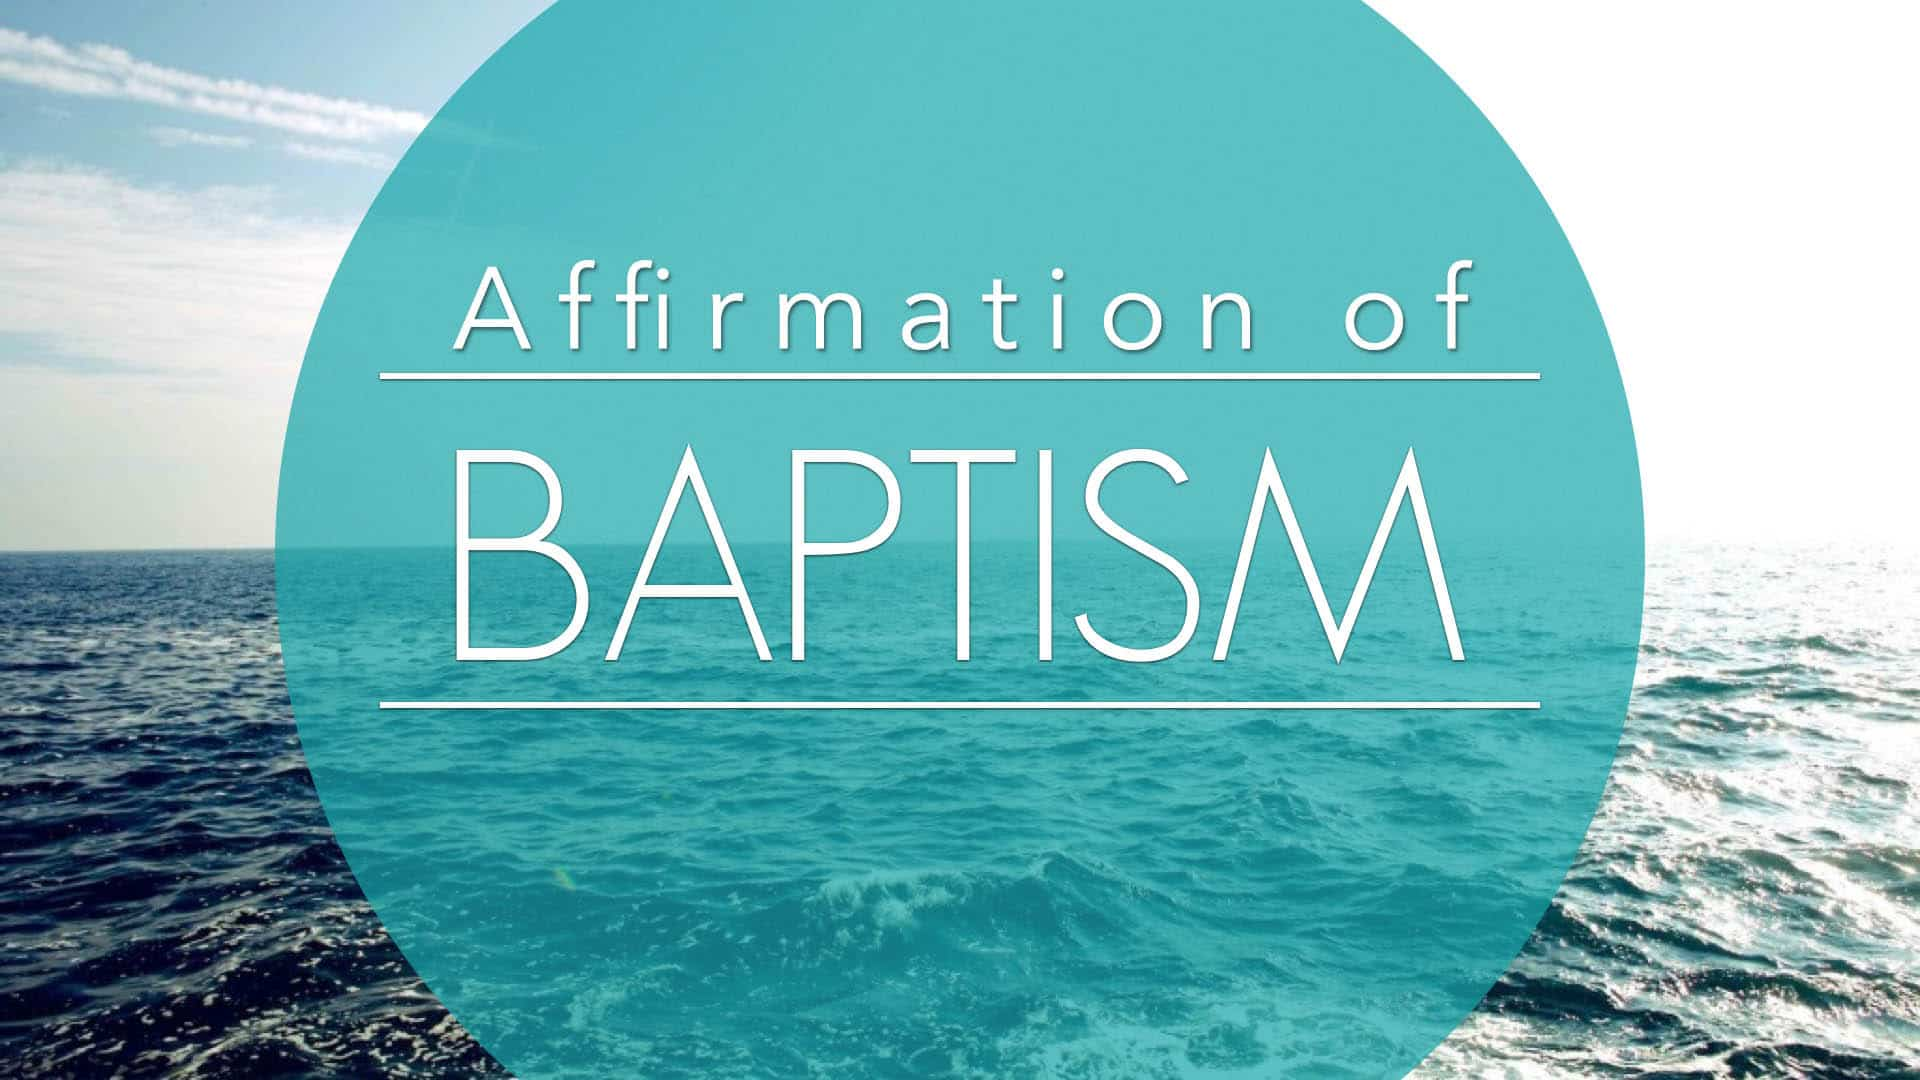 Affirmation-of-baptism